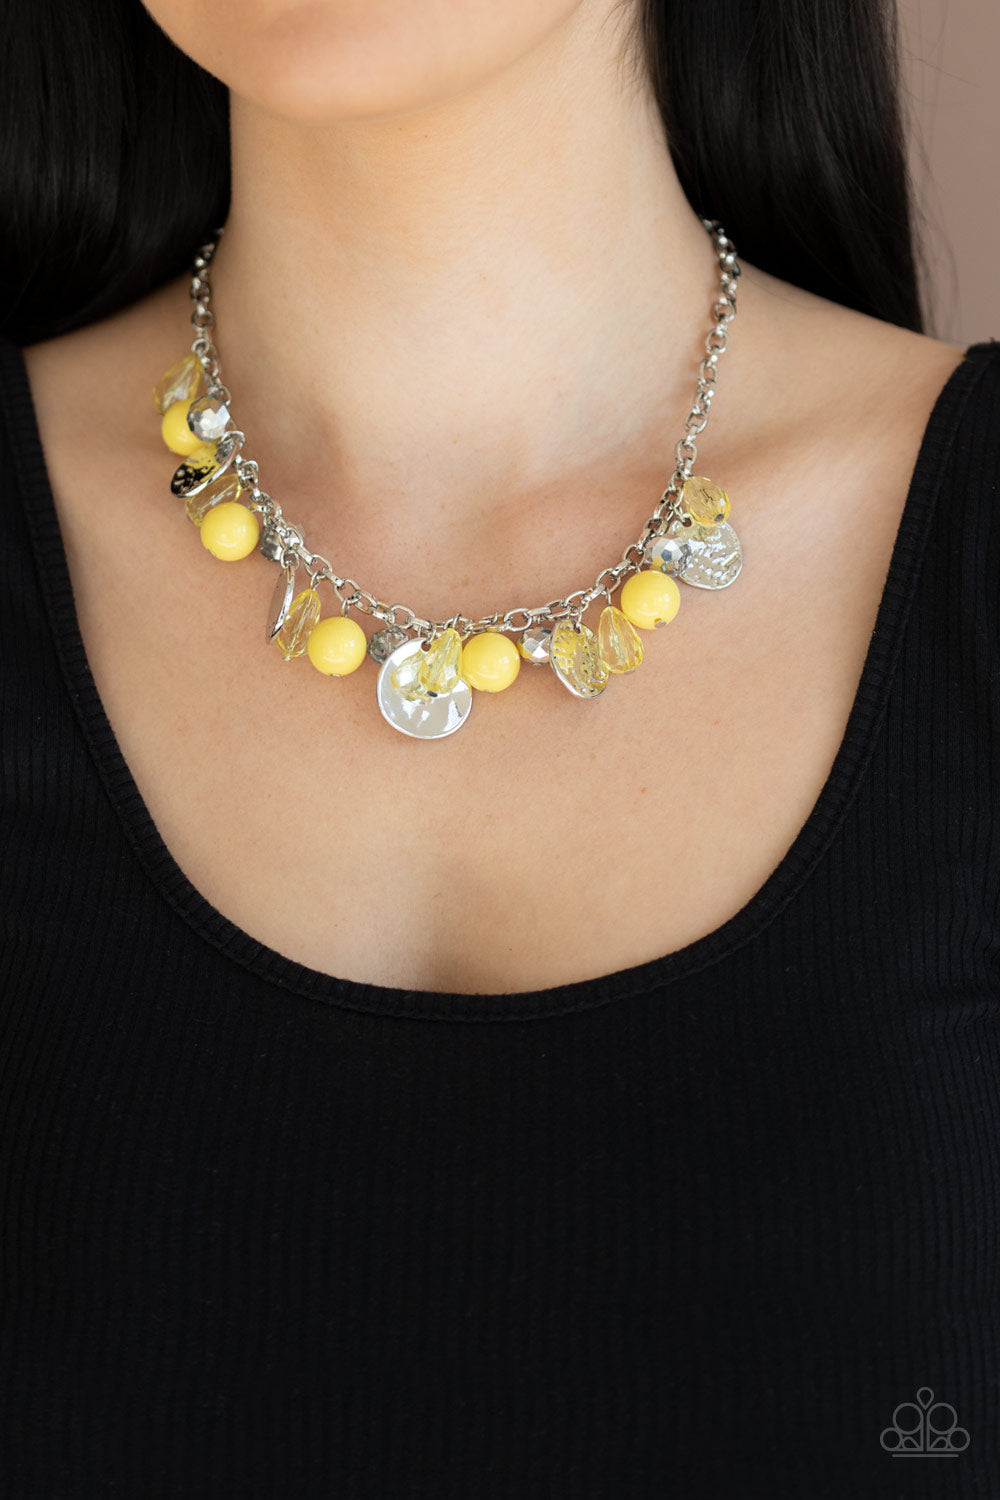 Prismatic Sheen - Yellow Necklace - SavvyChicksJewelry